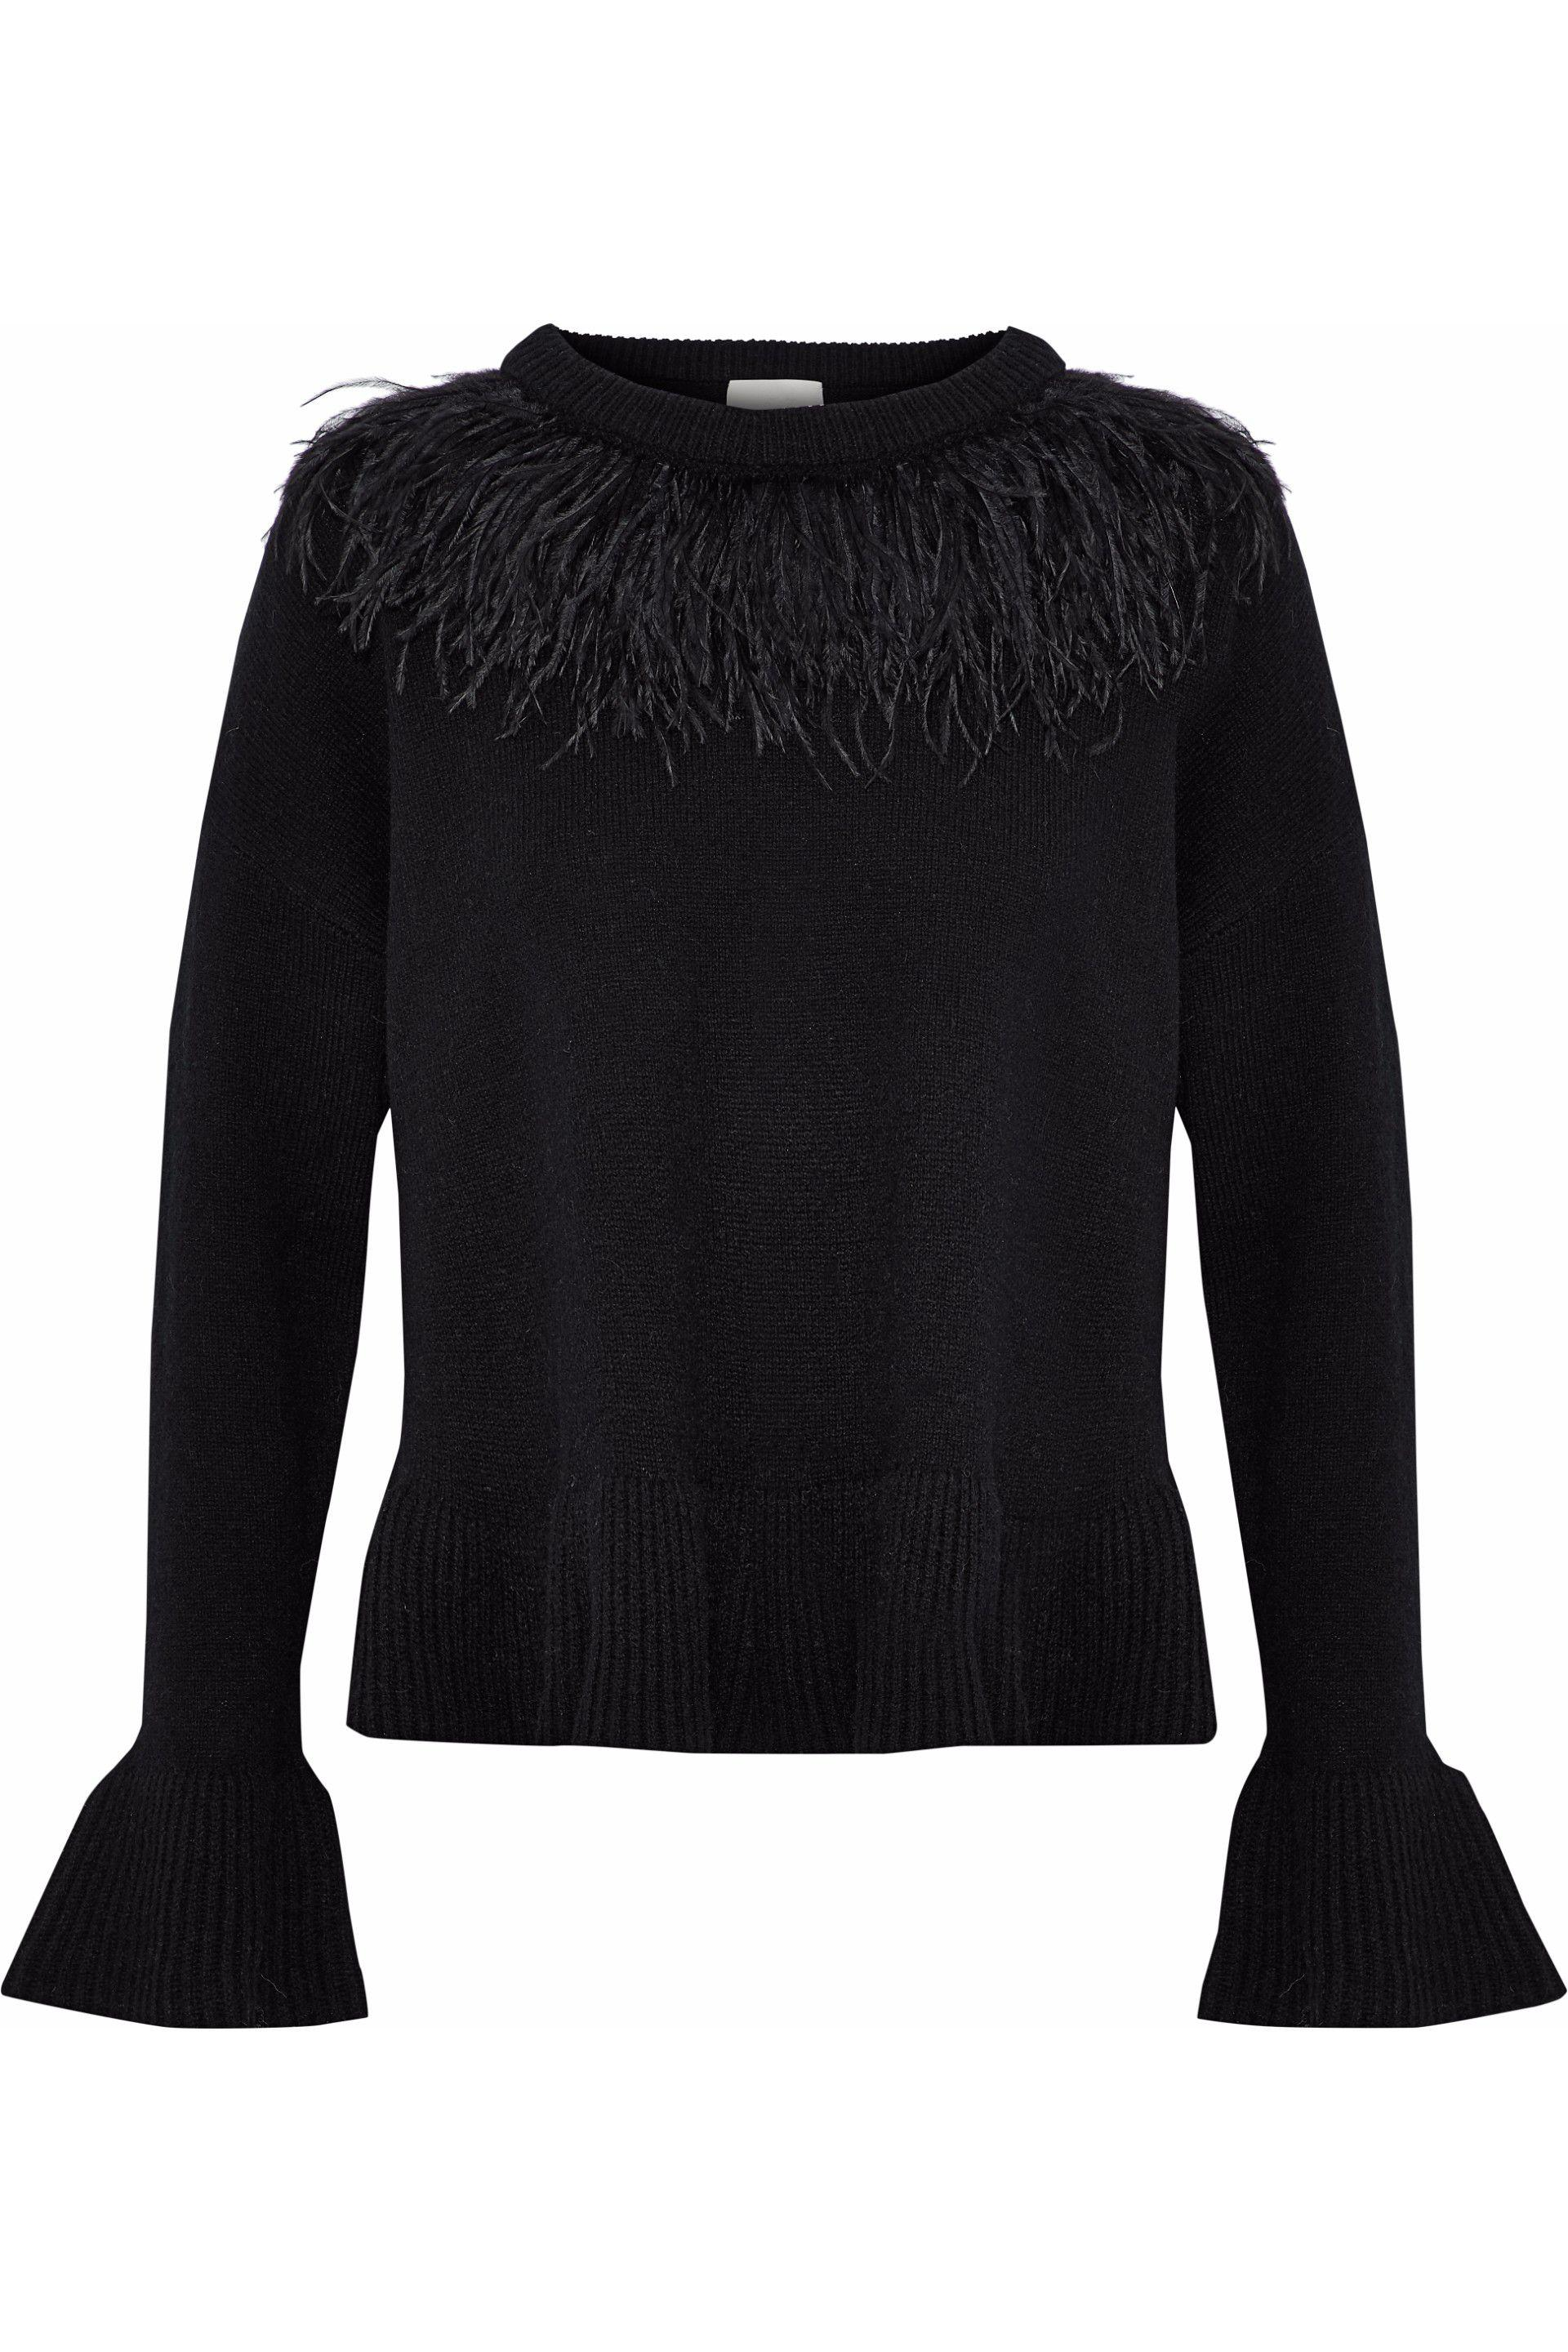 Cinq À Sept Woman Noa Ruffle-trimmed Wool-blend Cardigan Black Size M Cinq à Sept Visit Outlet Cheap Prices K3saf